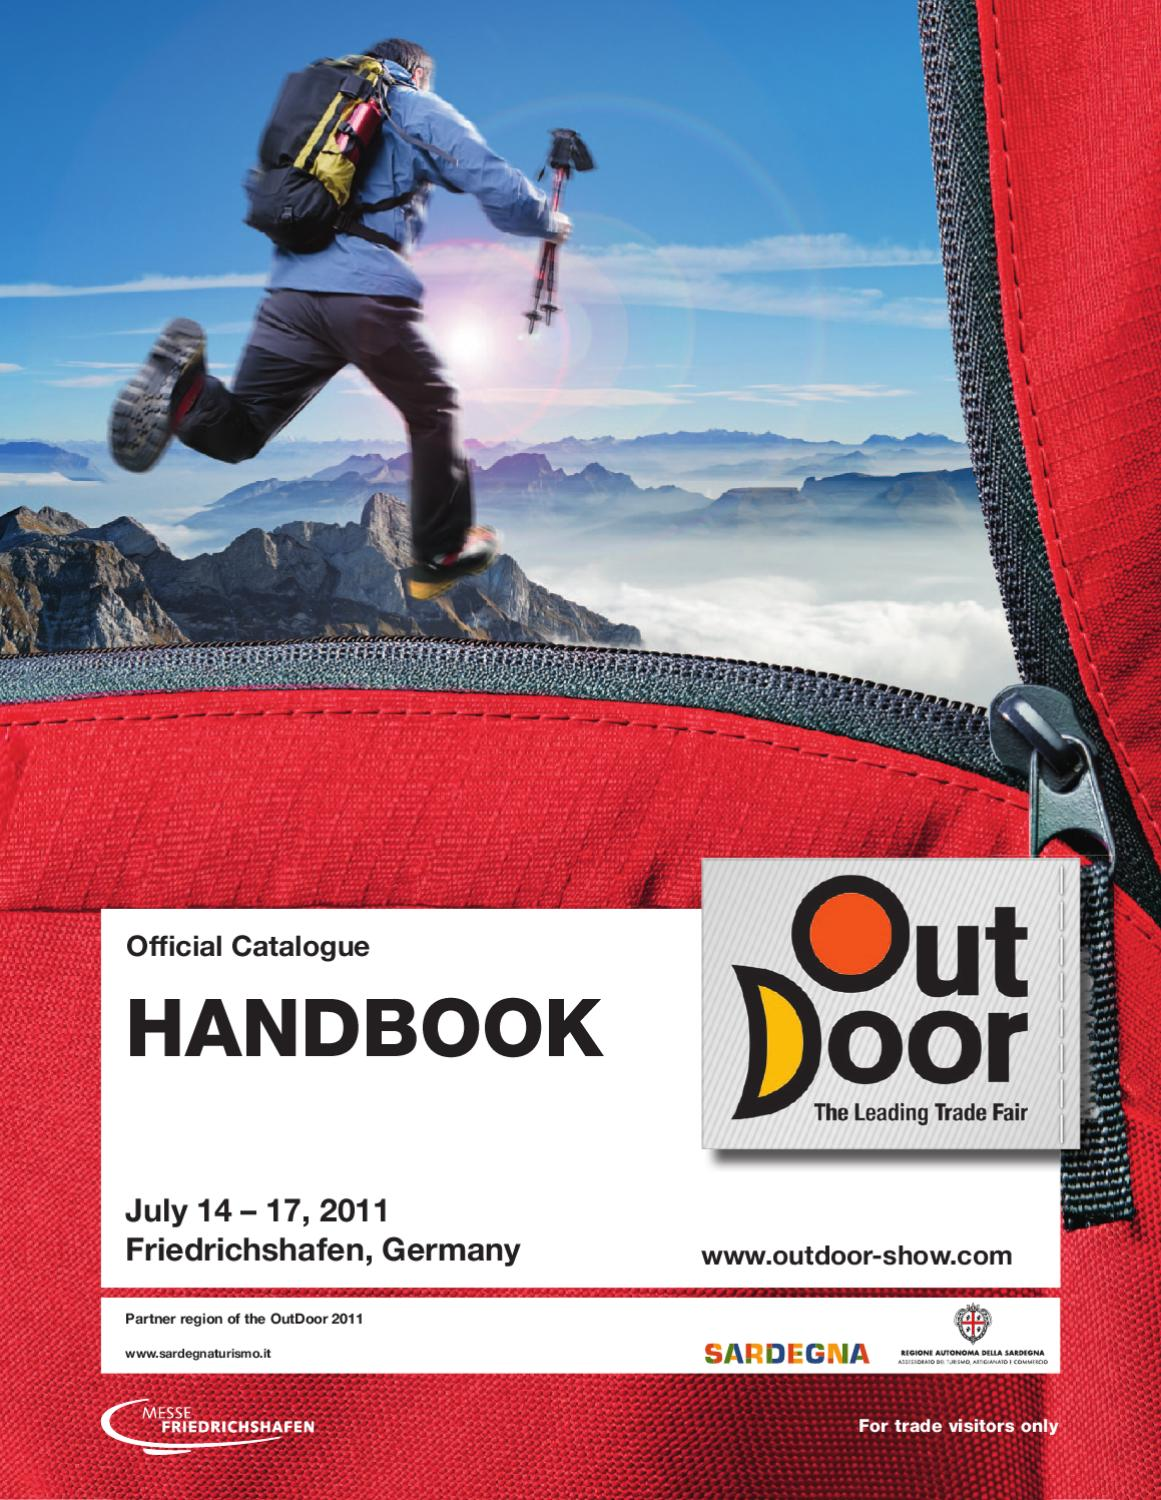 Sessel Cassin Outdoor Handbook 2011 By Messe Friedrichshafen Gmbh Issuu